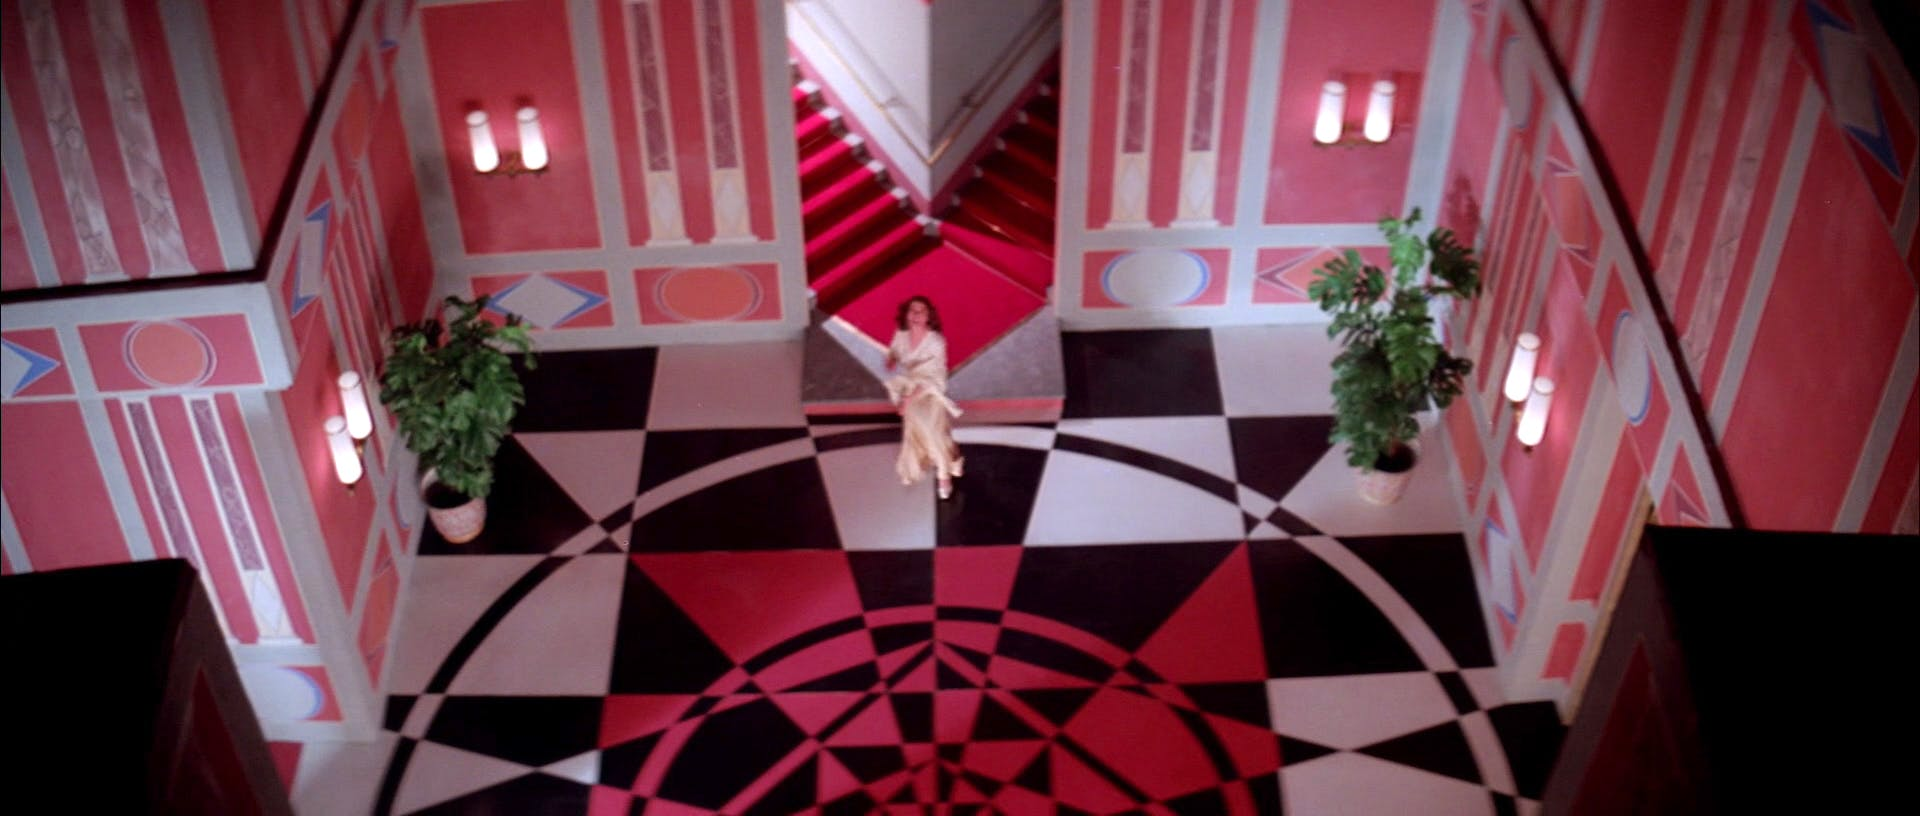 Still from Dario Argento's Suspiria